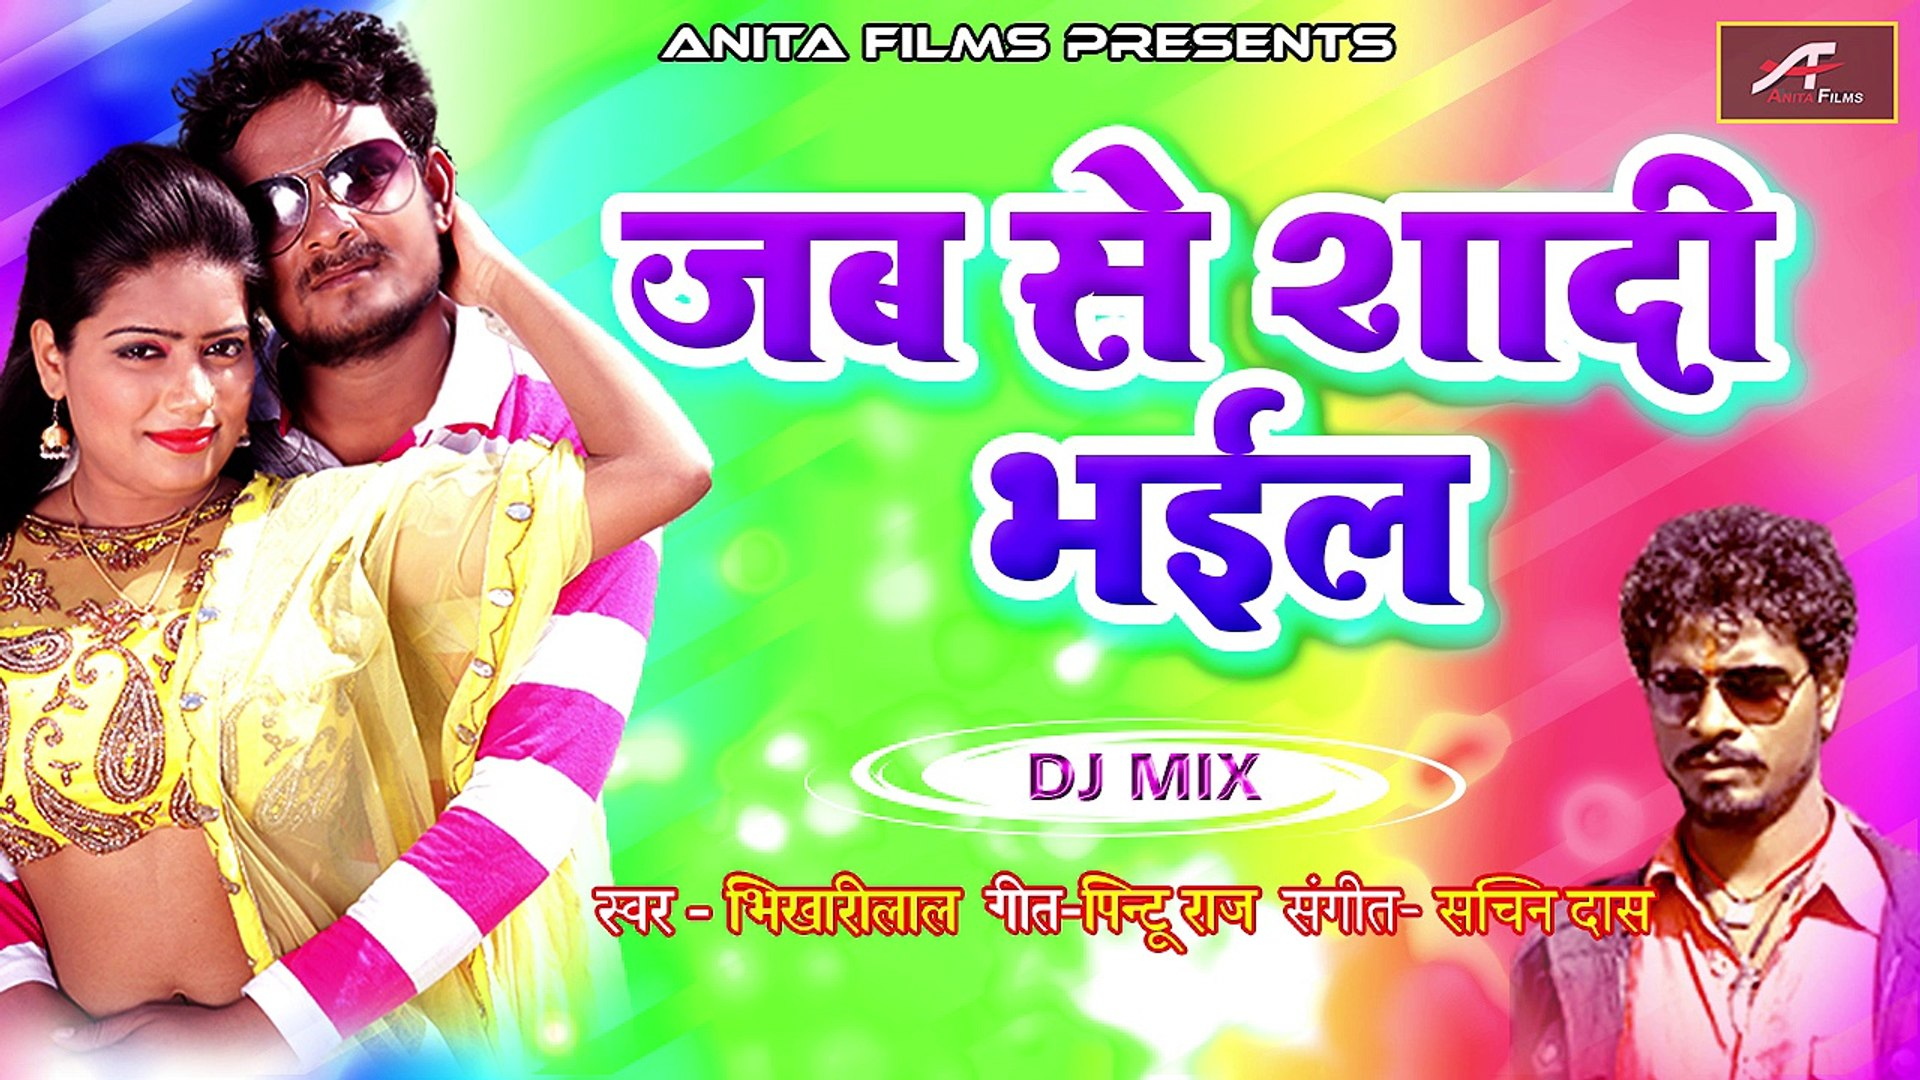 2018 Latest - Dj Mix | Jabase Shadi Bhail | Full Audio | Bhojpuri Dj Mix  Song | New Mp3 Song | Anita Films | Bhojpuri Gana